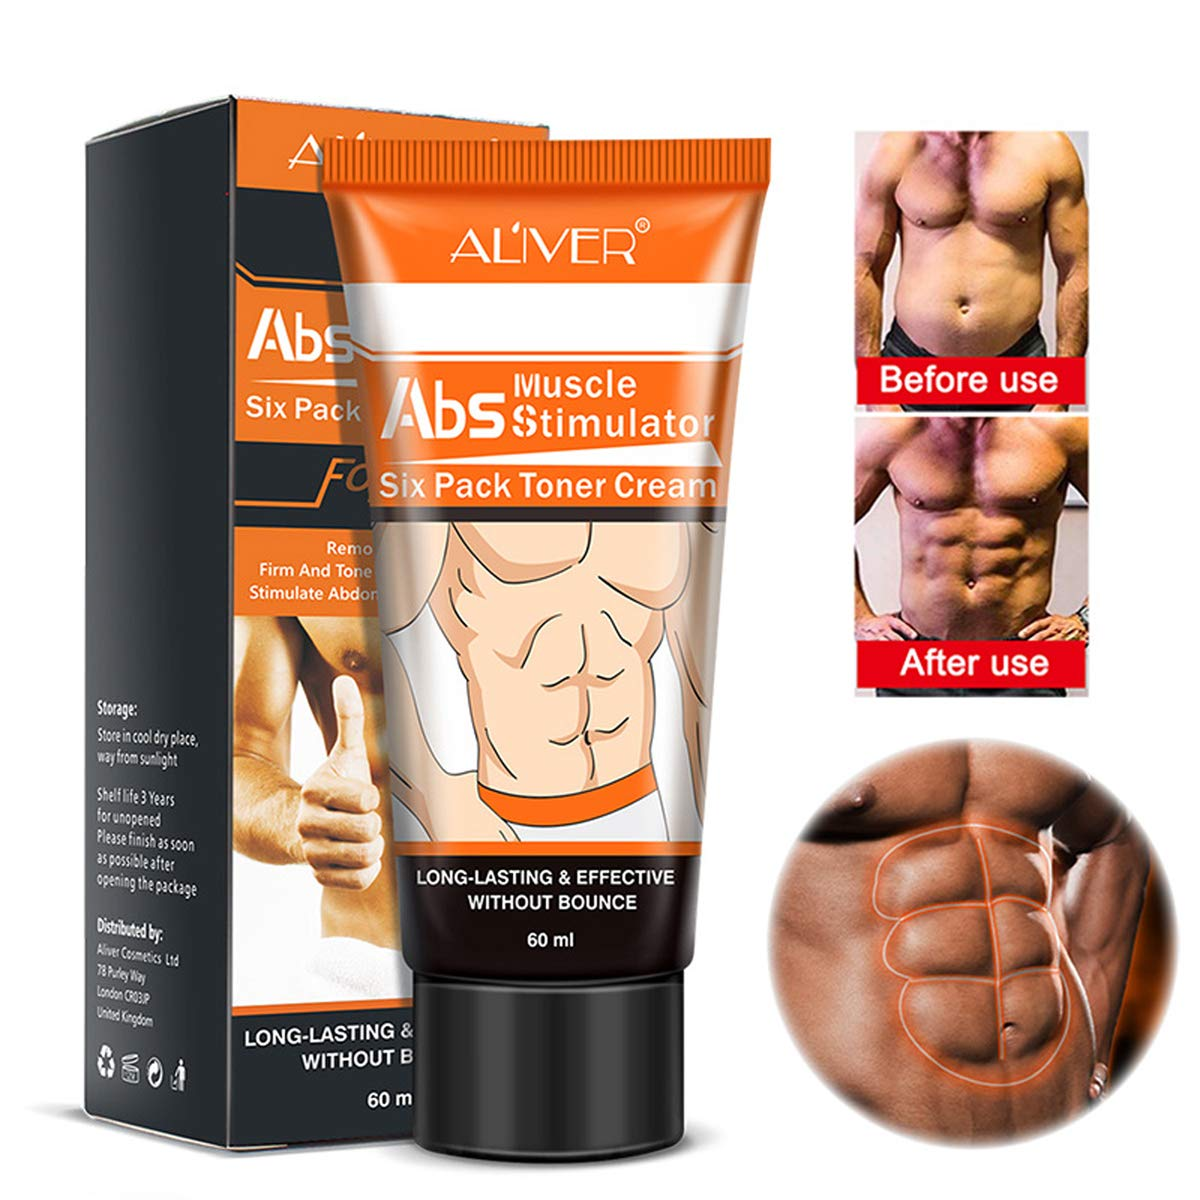 AL IVER Men Powerful Abdominal Muscle Cream,Slim Cream,Fat Burner, Weight Loss Slimming Enhancer Workout Coconut Body Creams Leg Body Waist Effective Anti Cellulite Fat Burning,Tighten Muscles